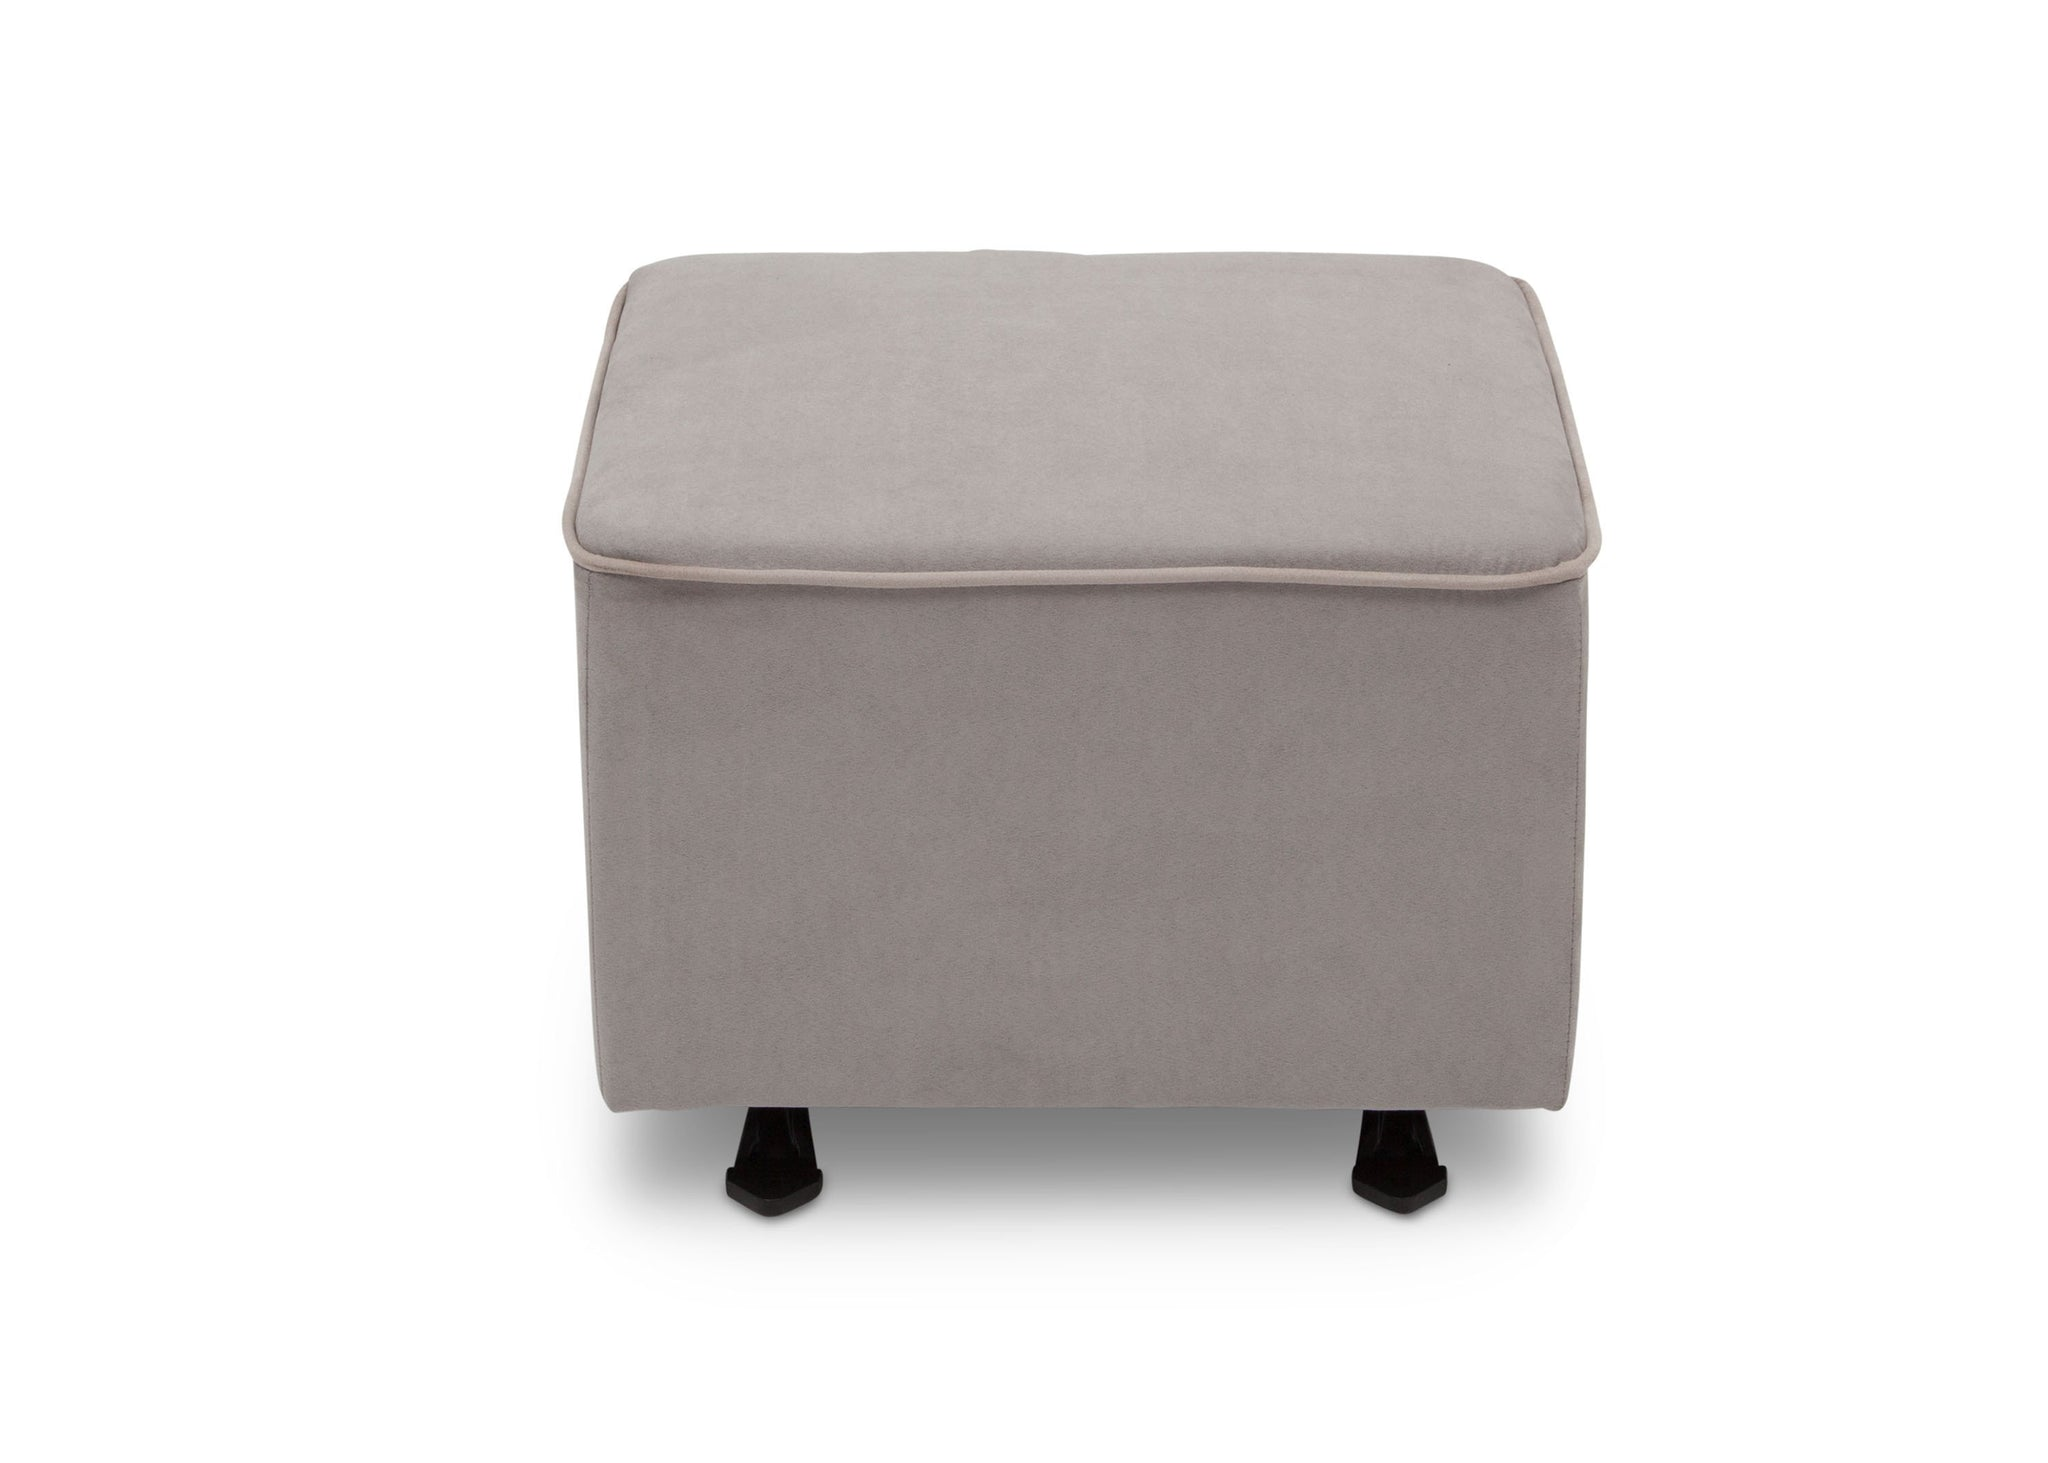 Delta Children Dove Grey with Soft Grey Welt (036) Nursery Gliding Ottoman (501220), Front View, b2b